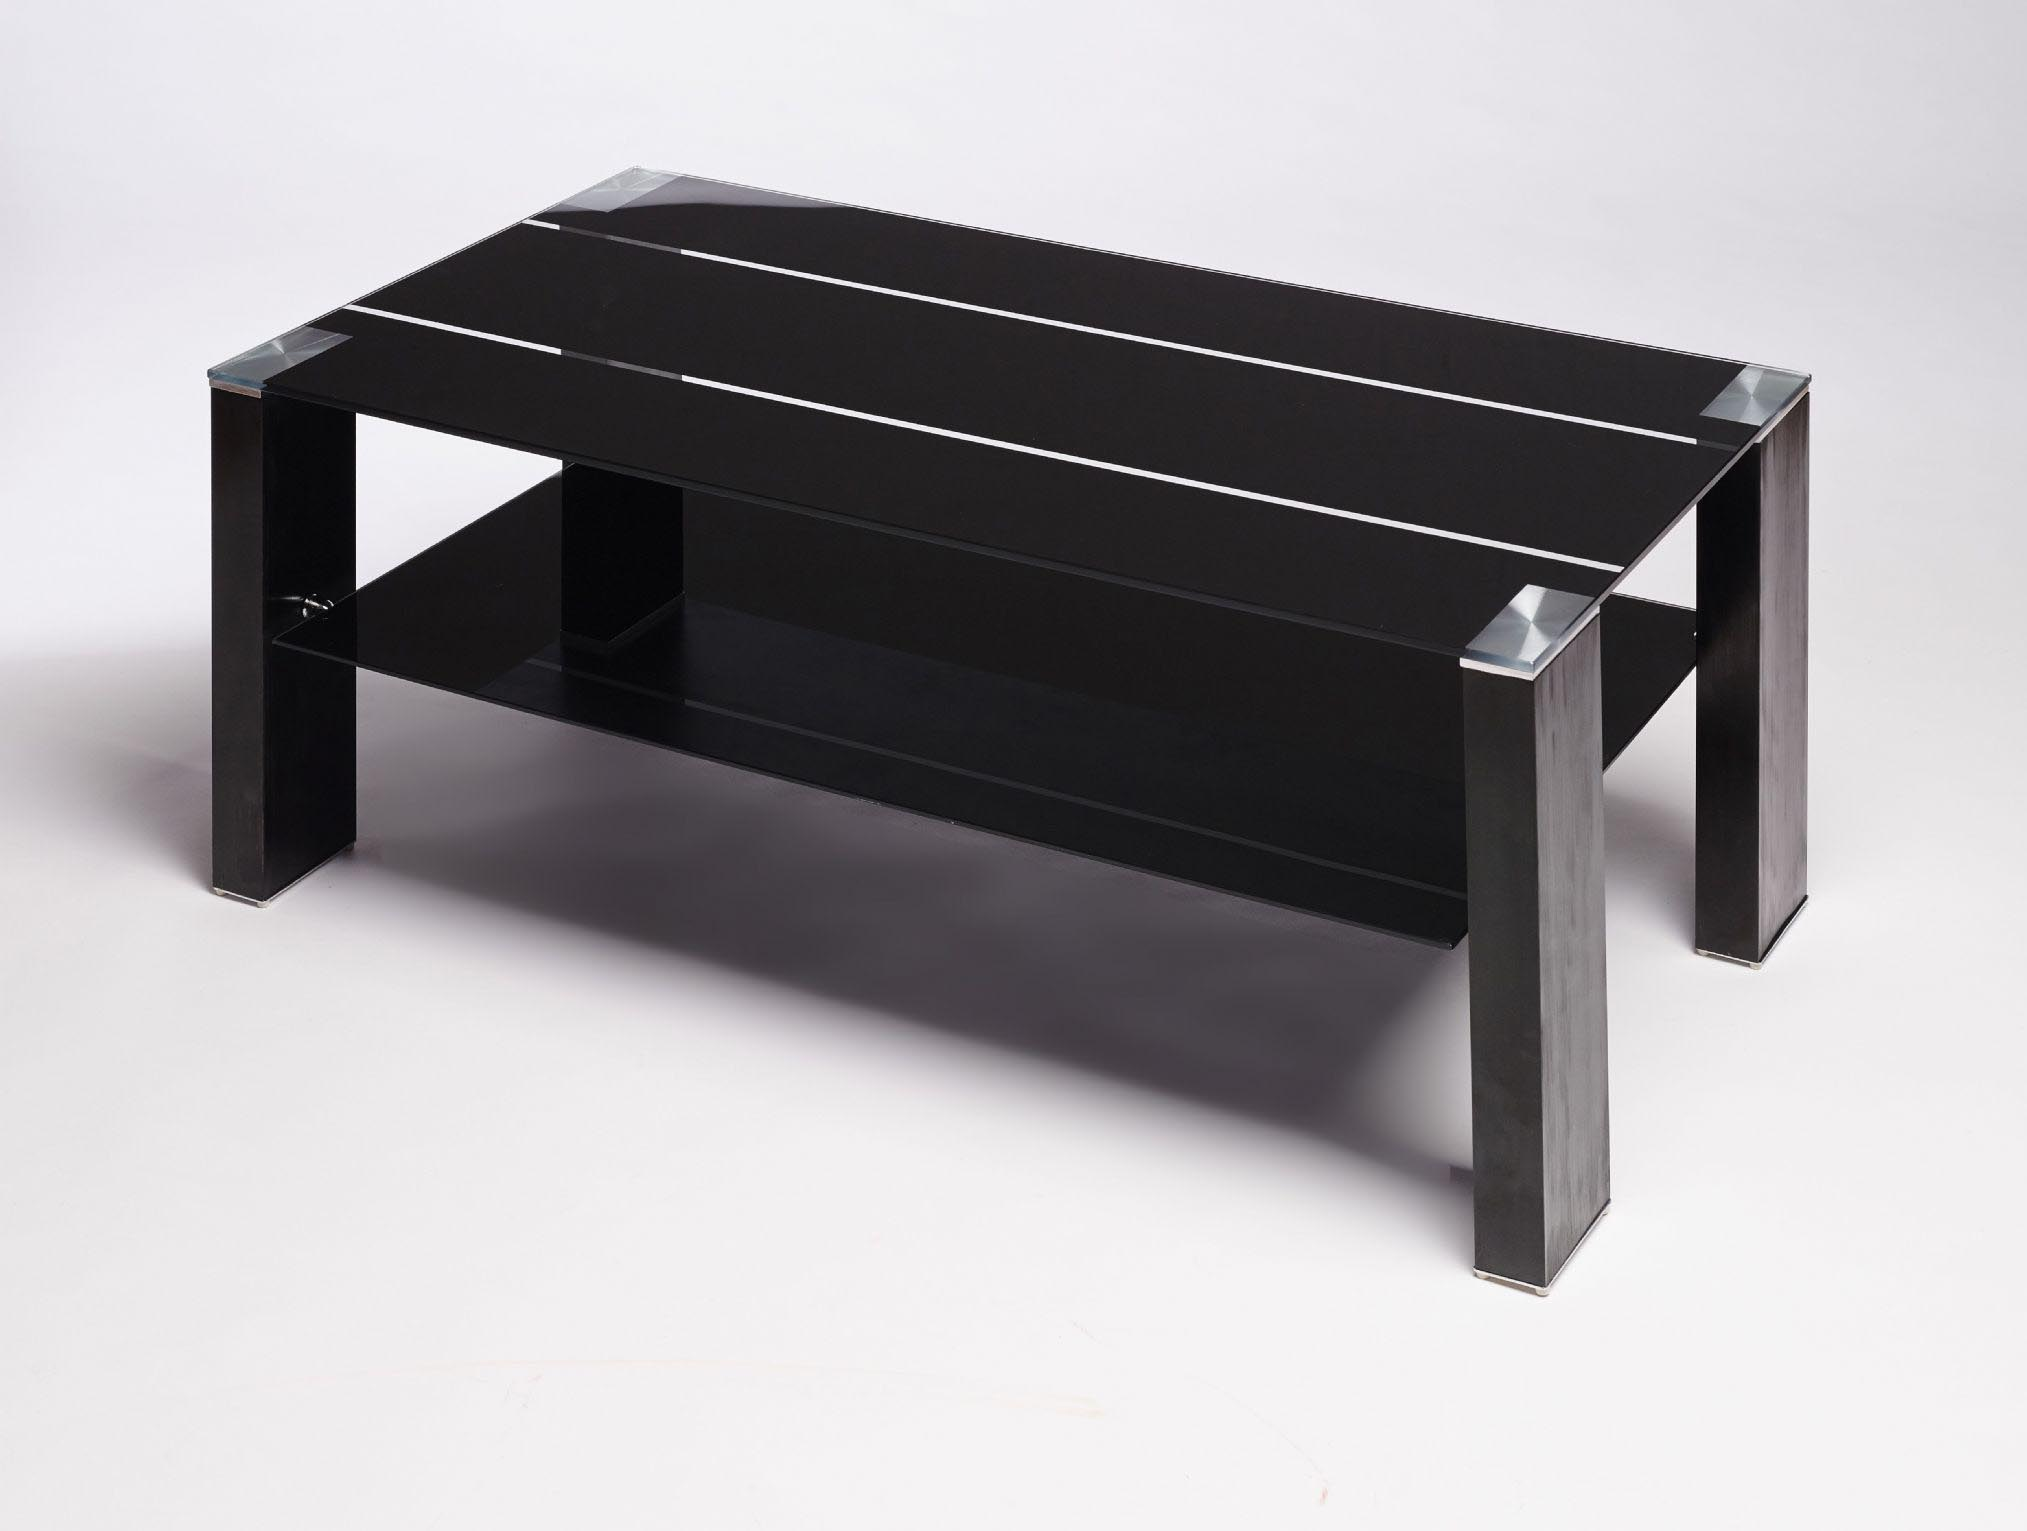 Black glass coffee table contemporary modern retro coffee table design ideas Black coffee table with glass